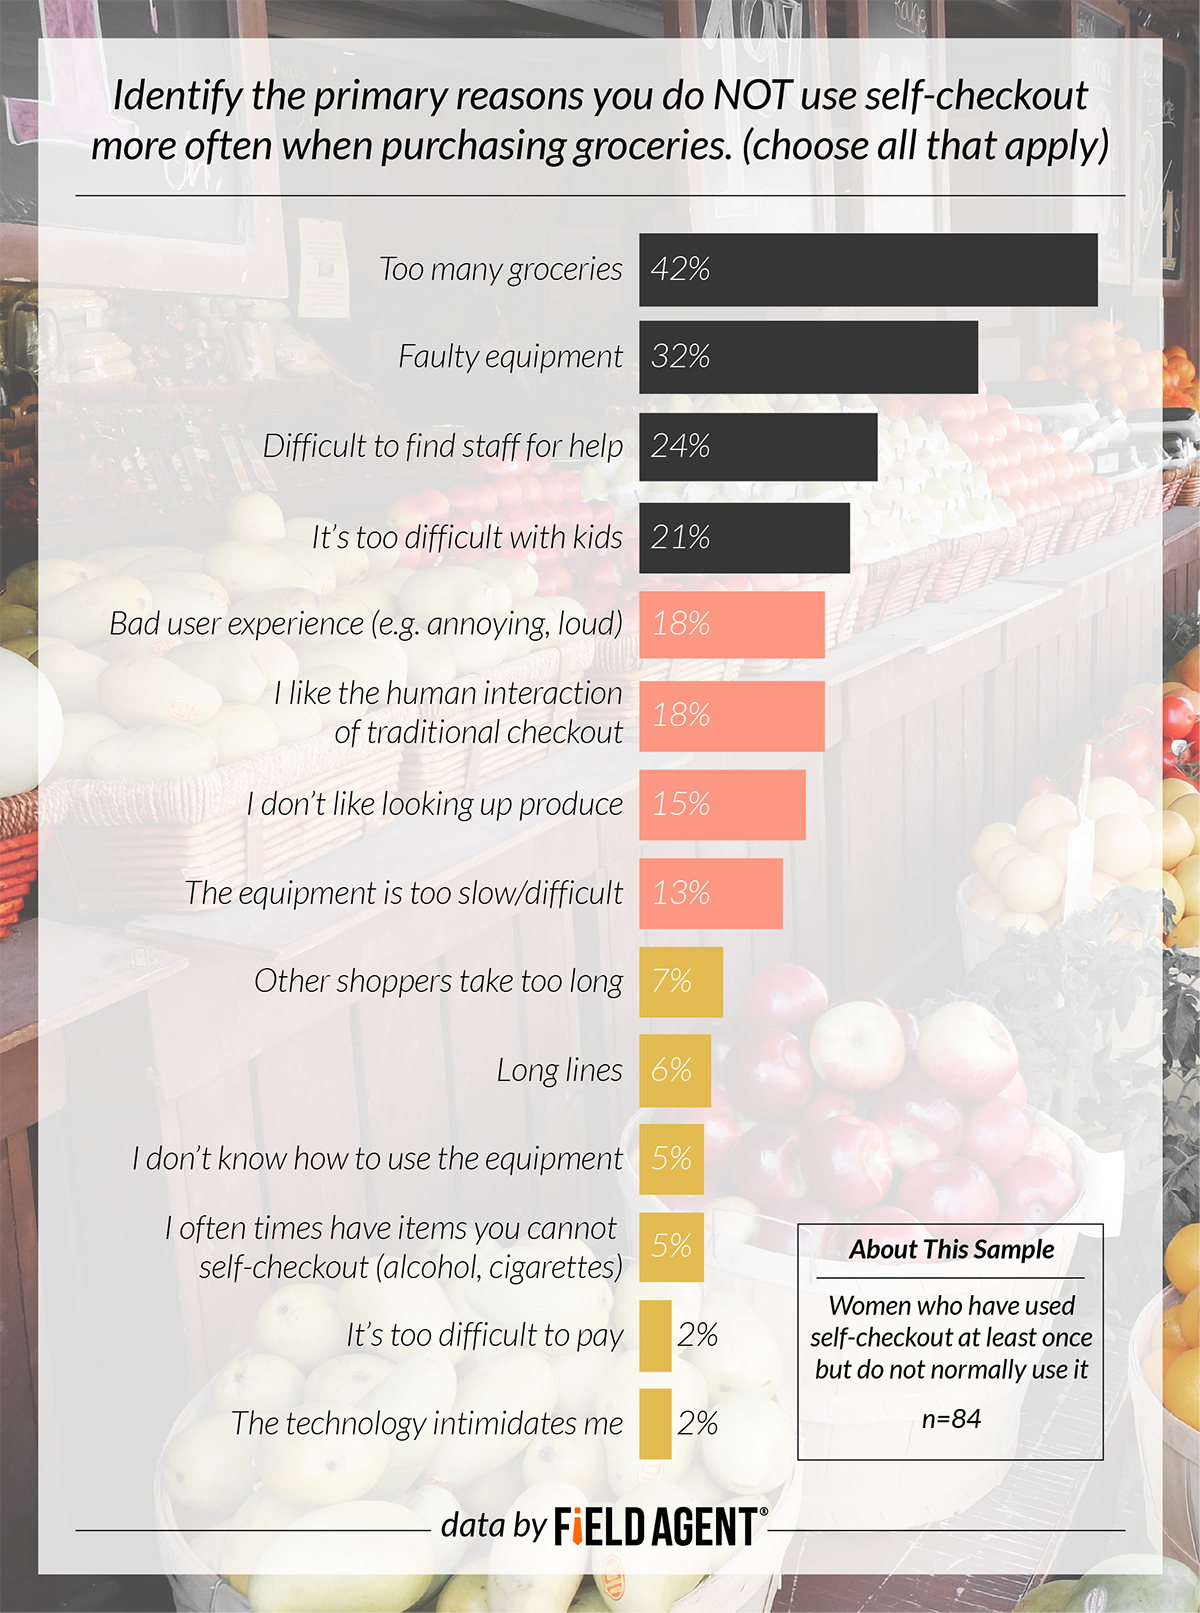 Identify the primary reasons you do not use self-checkout more often when purchasing groceries.